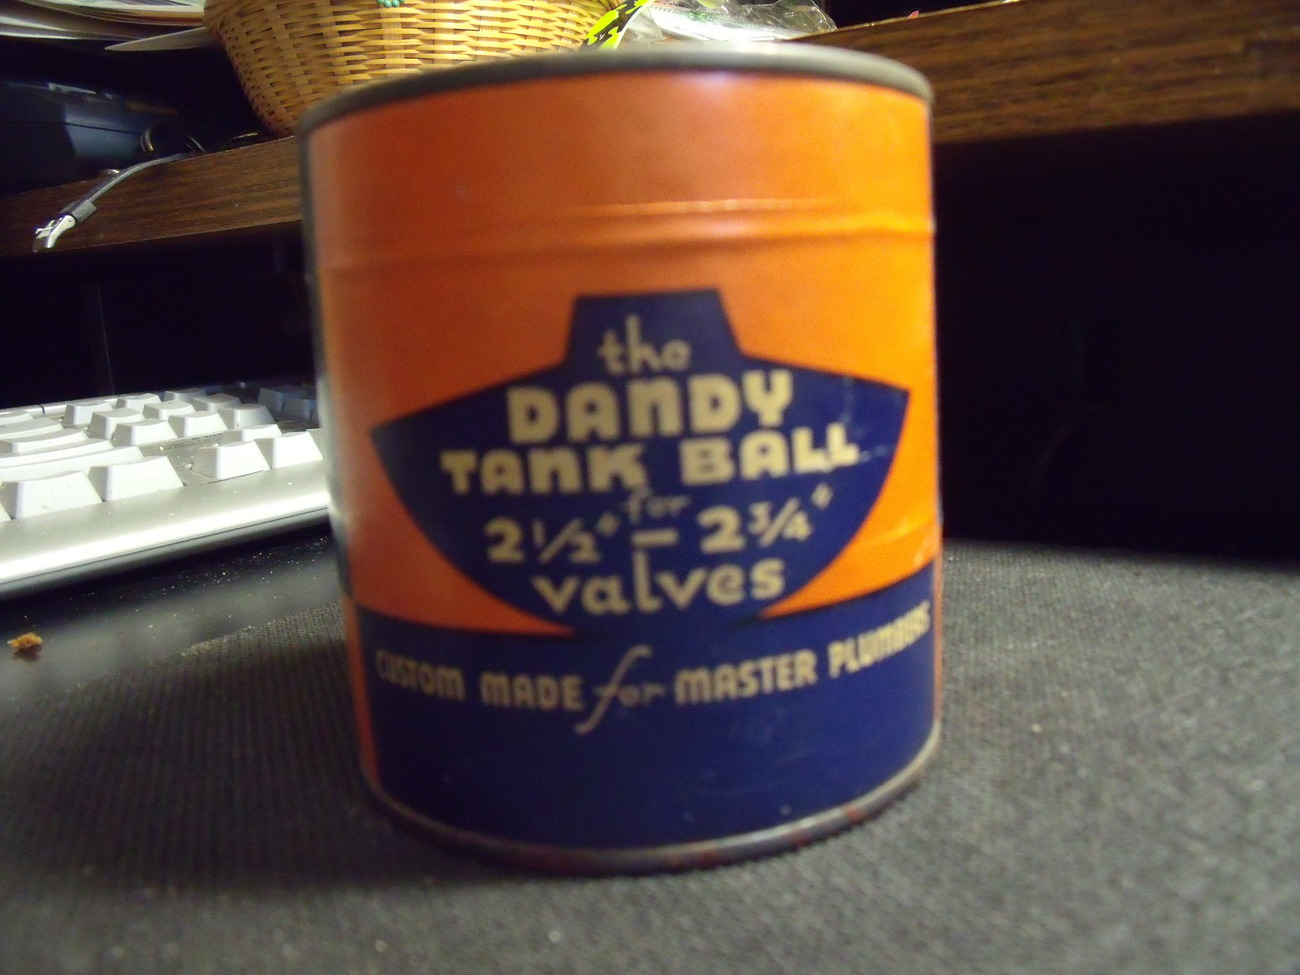 Original Dandy Tank Ball Container with Ball Replacement